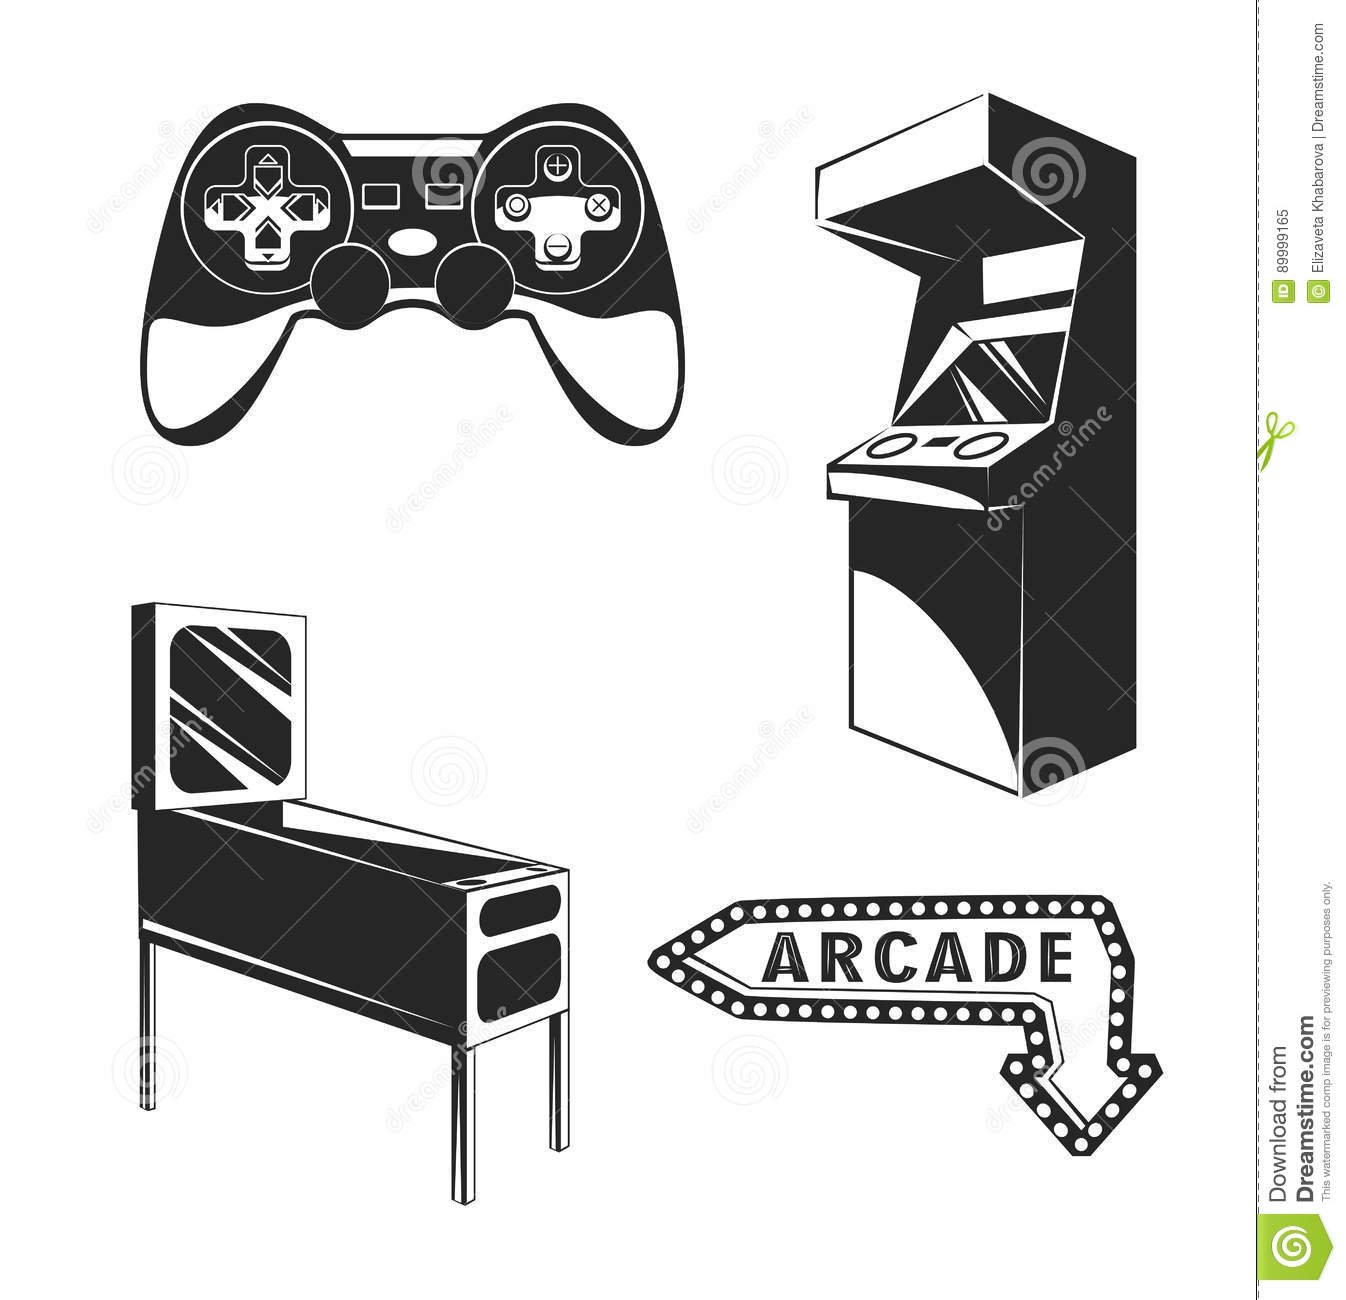 Gaming Arcade Machine With Blank Screen For Your Design